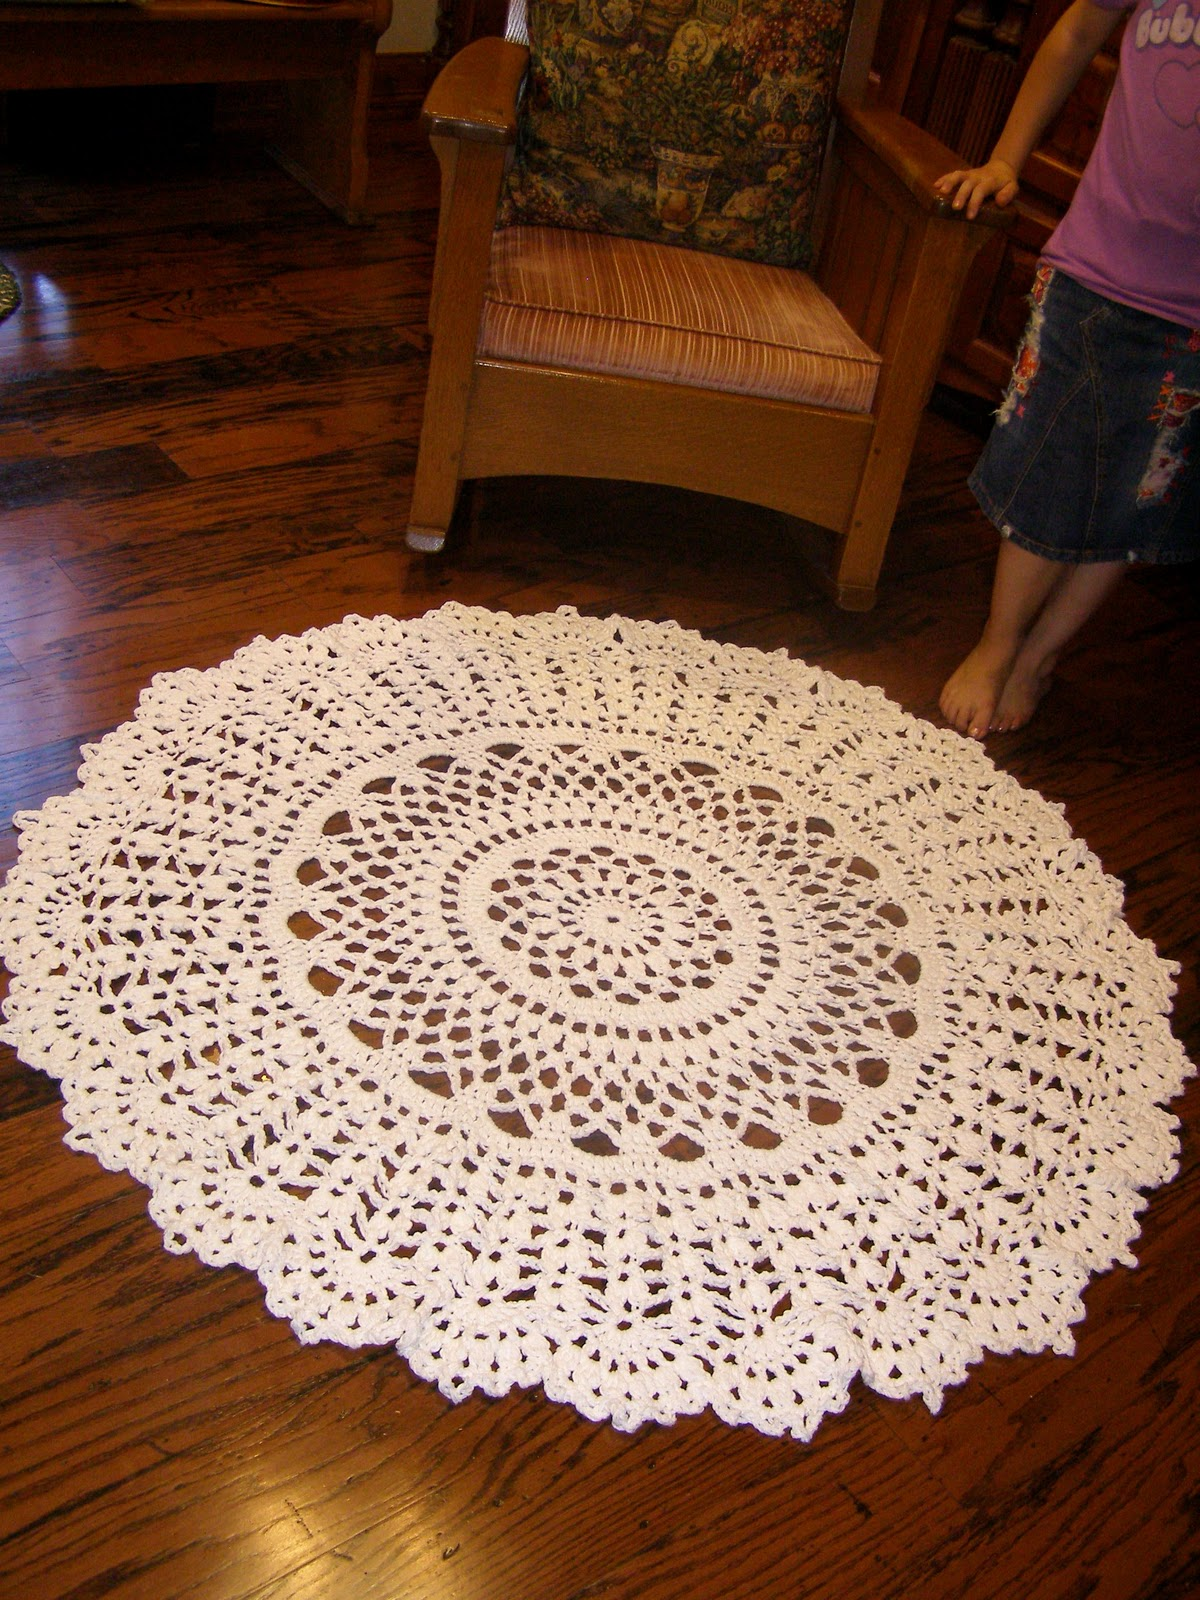 Lace and Whimsy: Crocheted Rug Doily Coverlet Afghan?